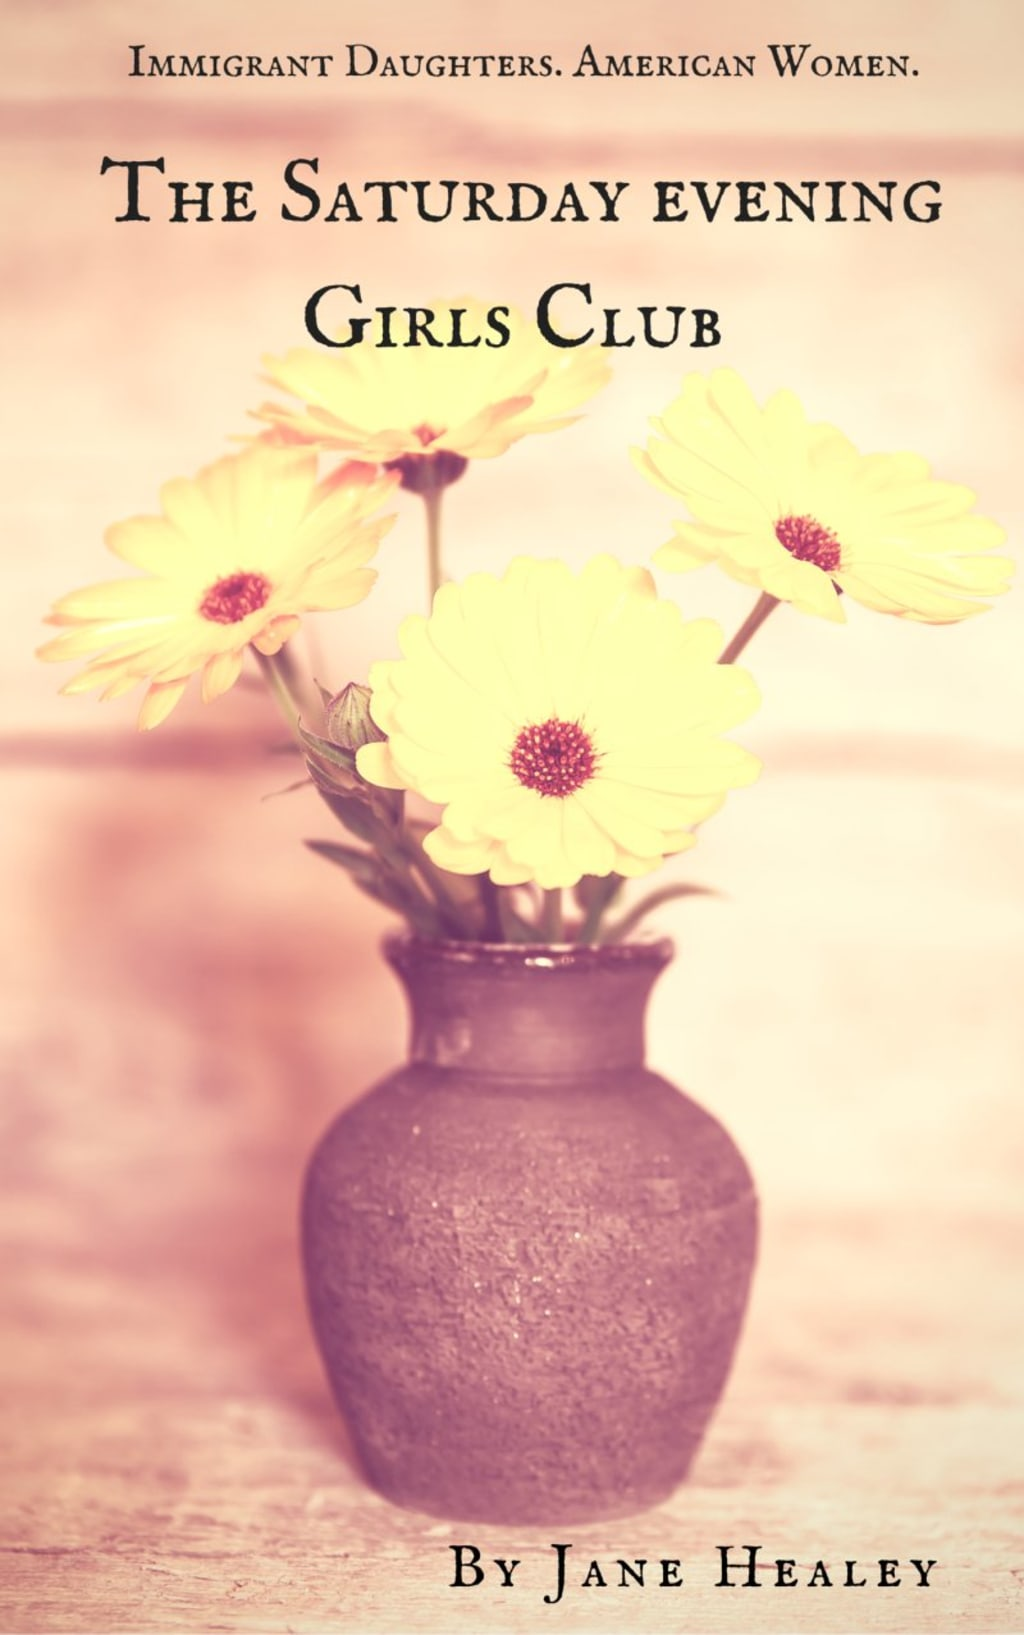 'The Saturday Evening Girls Club' Book Review